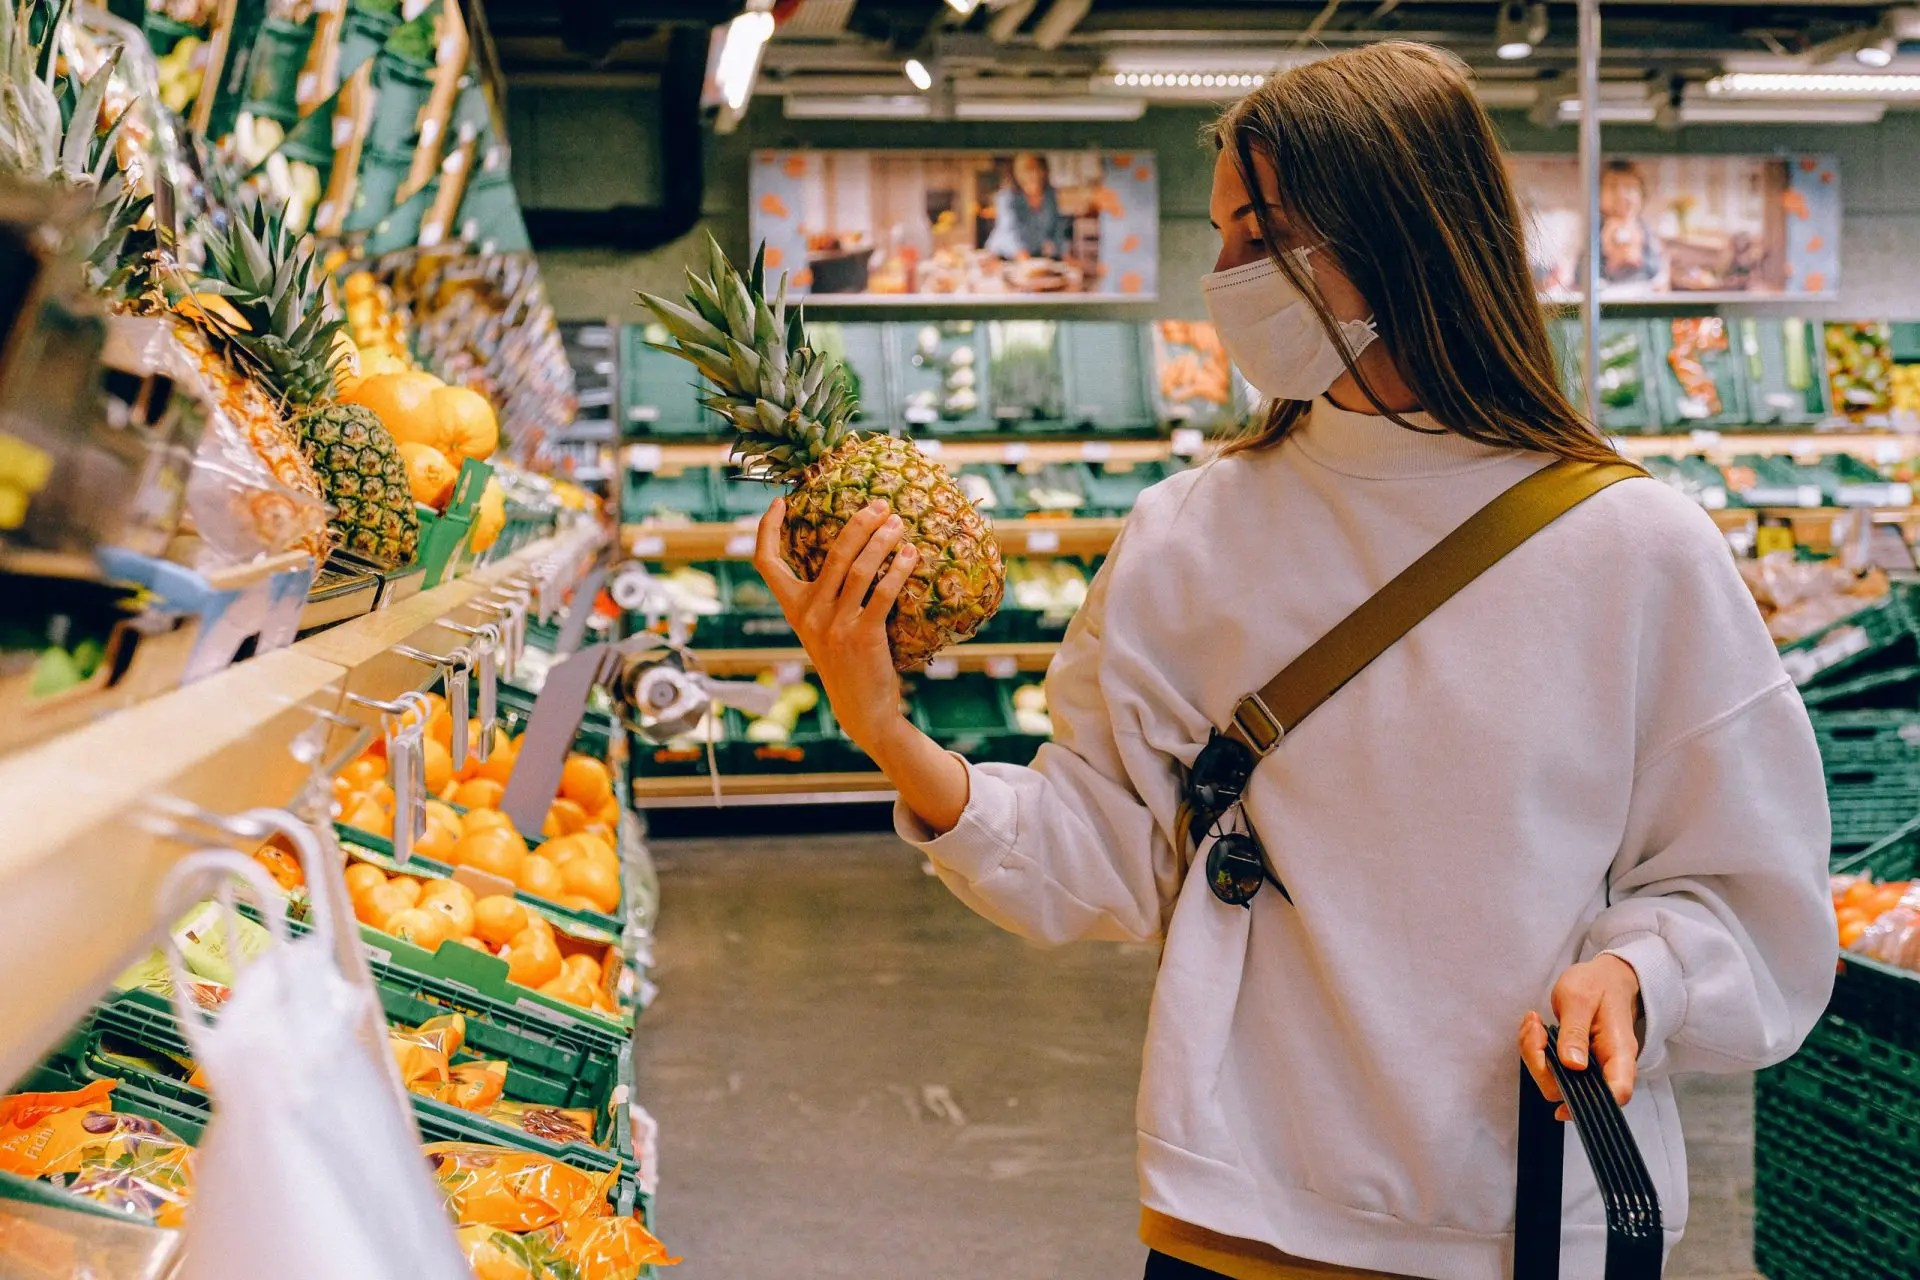 Woman wearing a mask, holding a pinaple, in supermarket